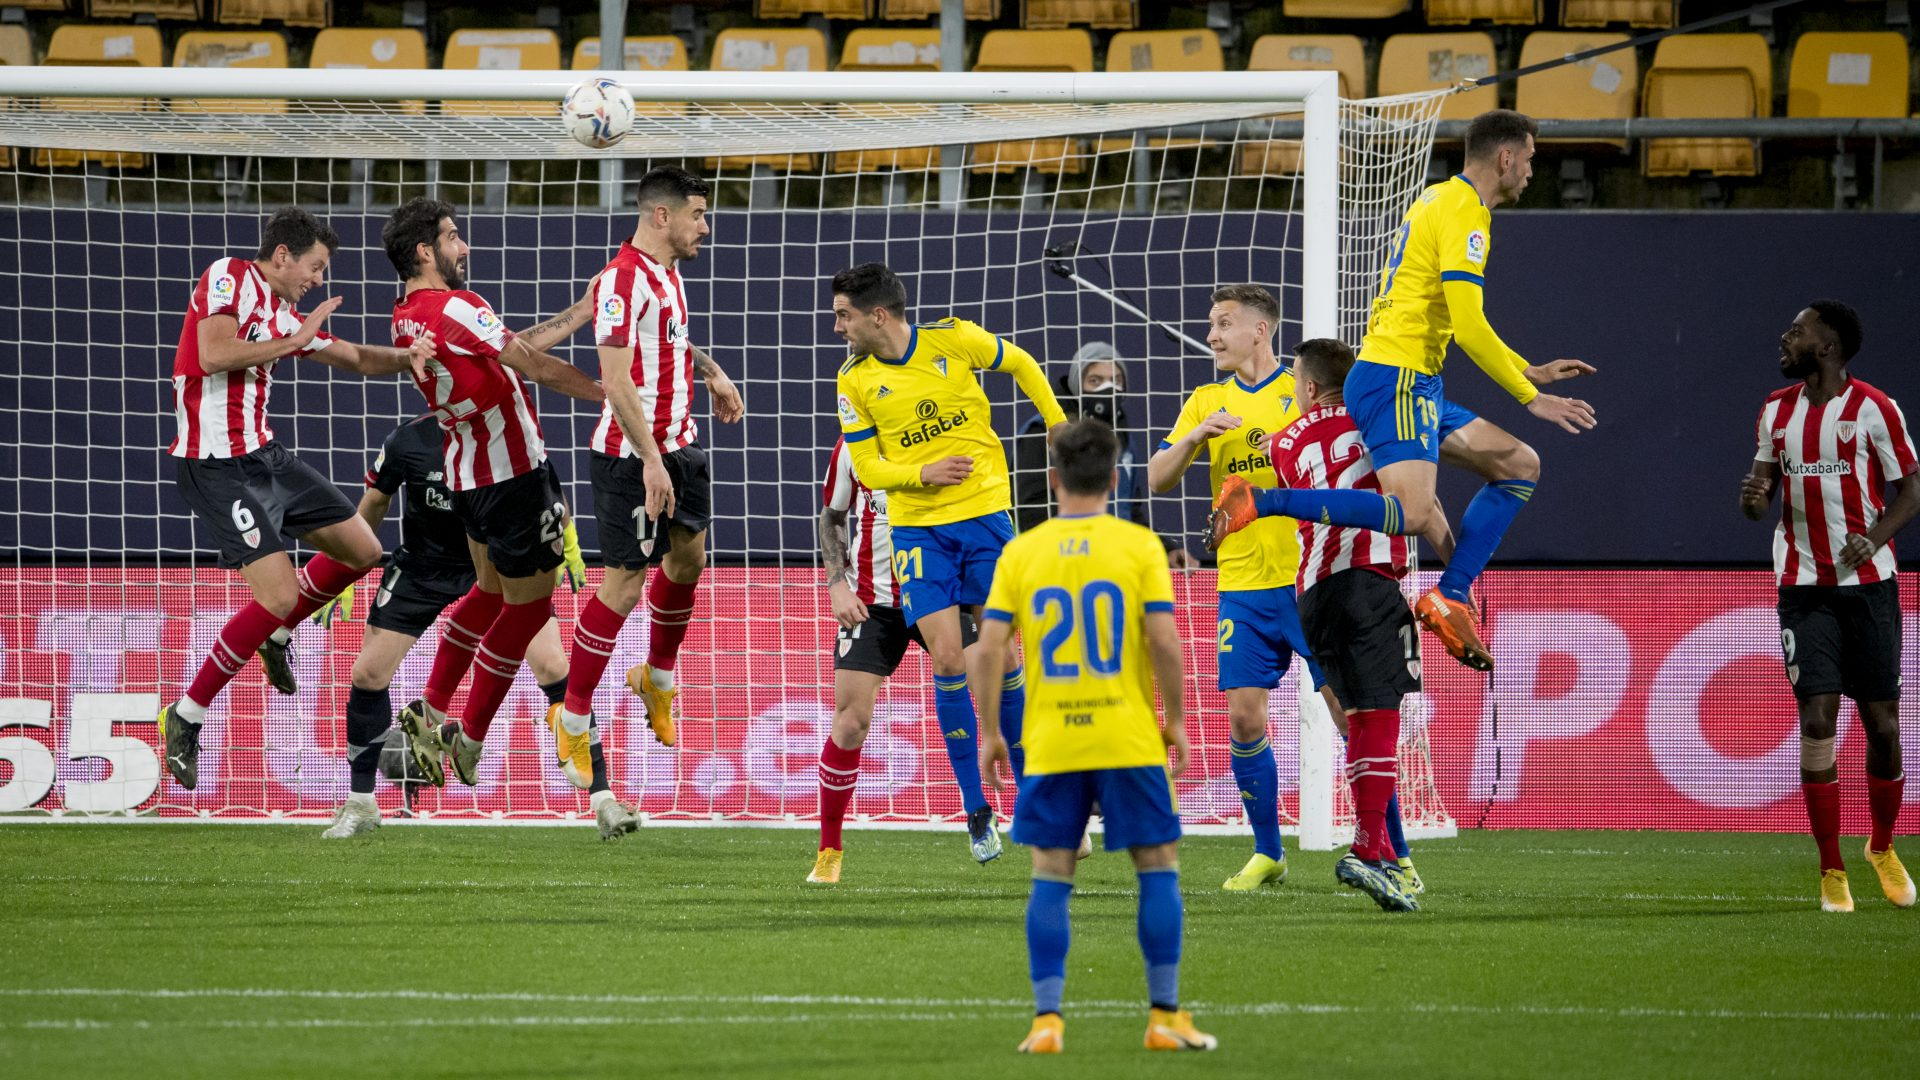 Cádiz CF – Athletic Club  (M23 – LaLiga)